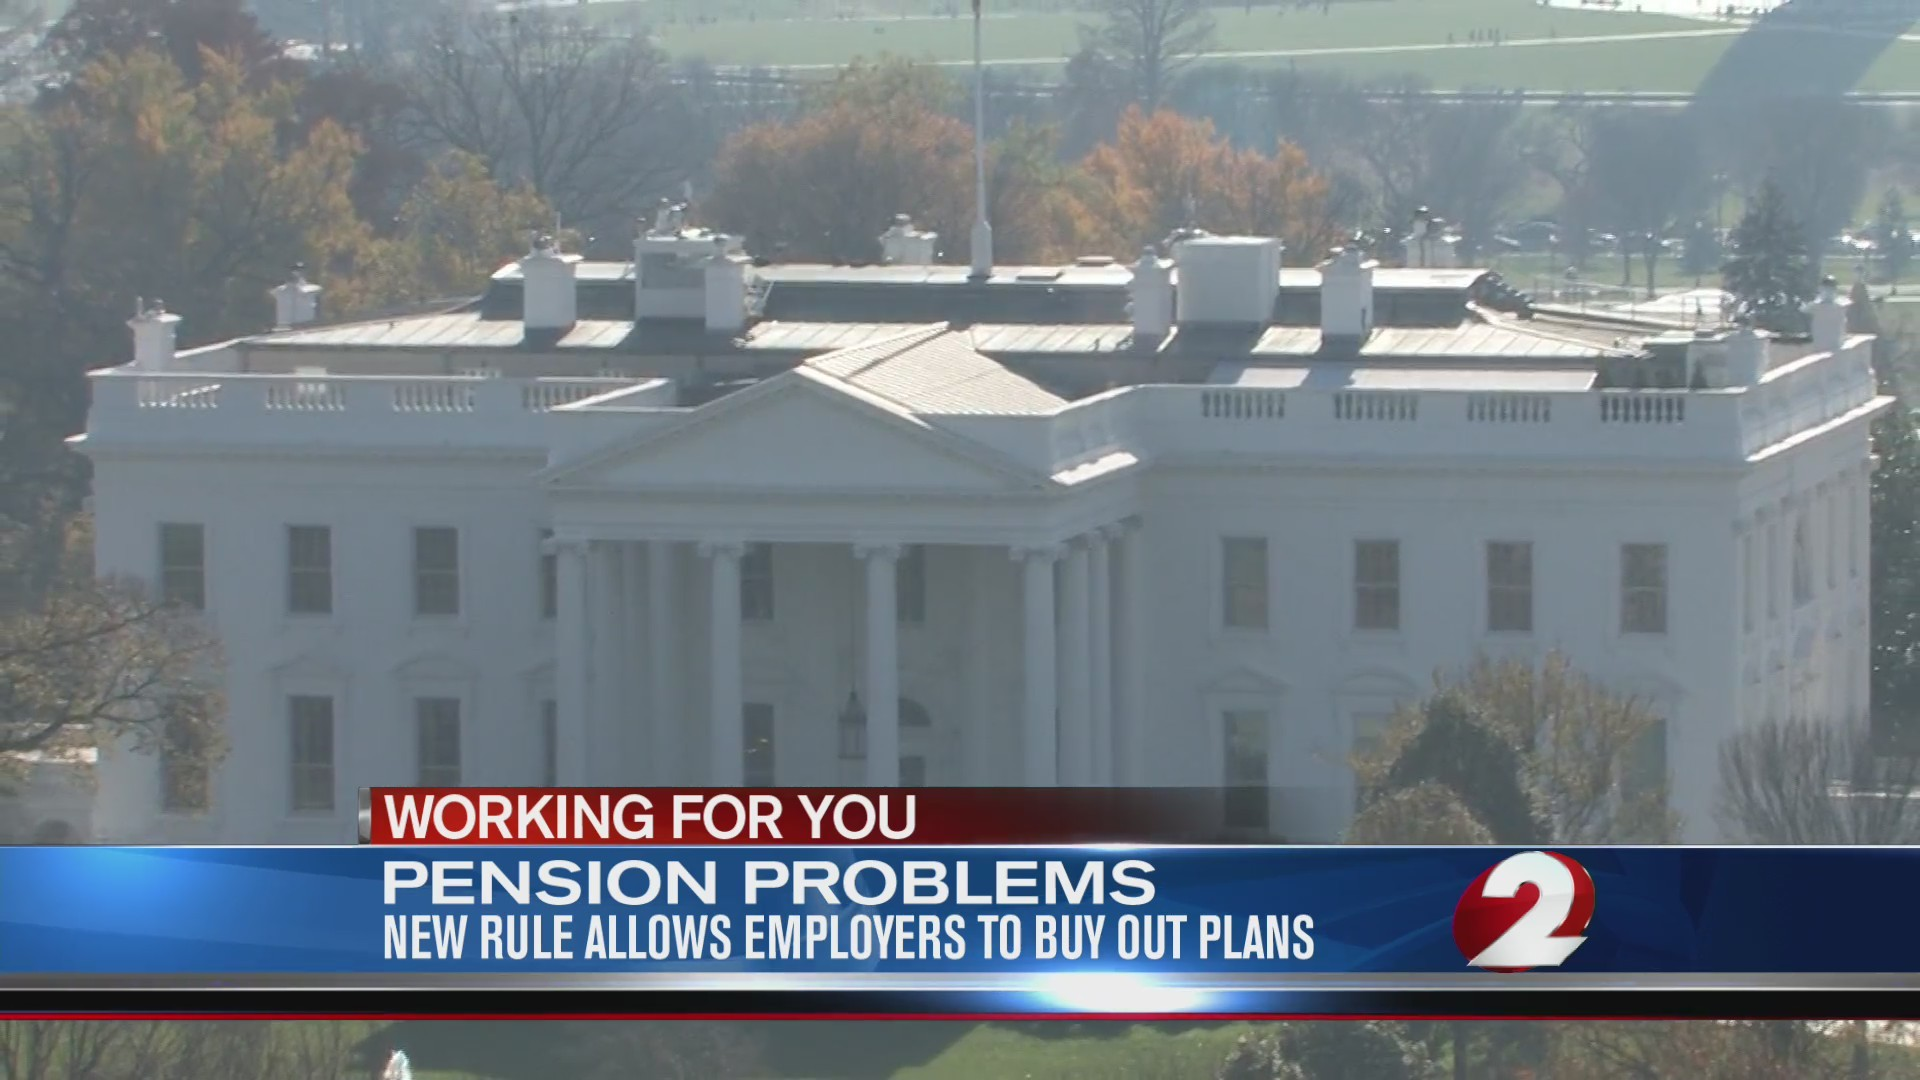 New rule allows employees to buy out pension plans